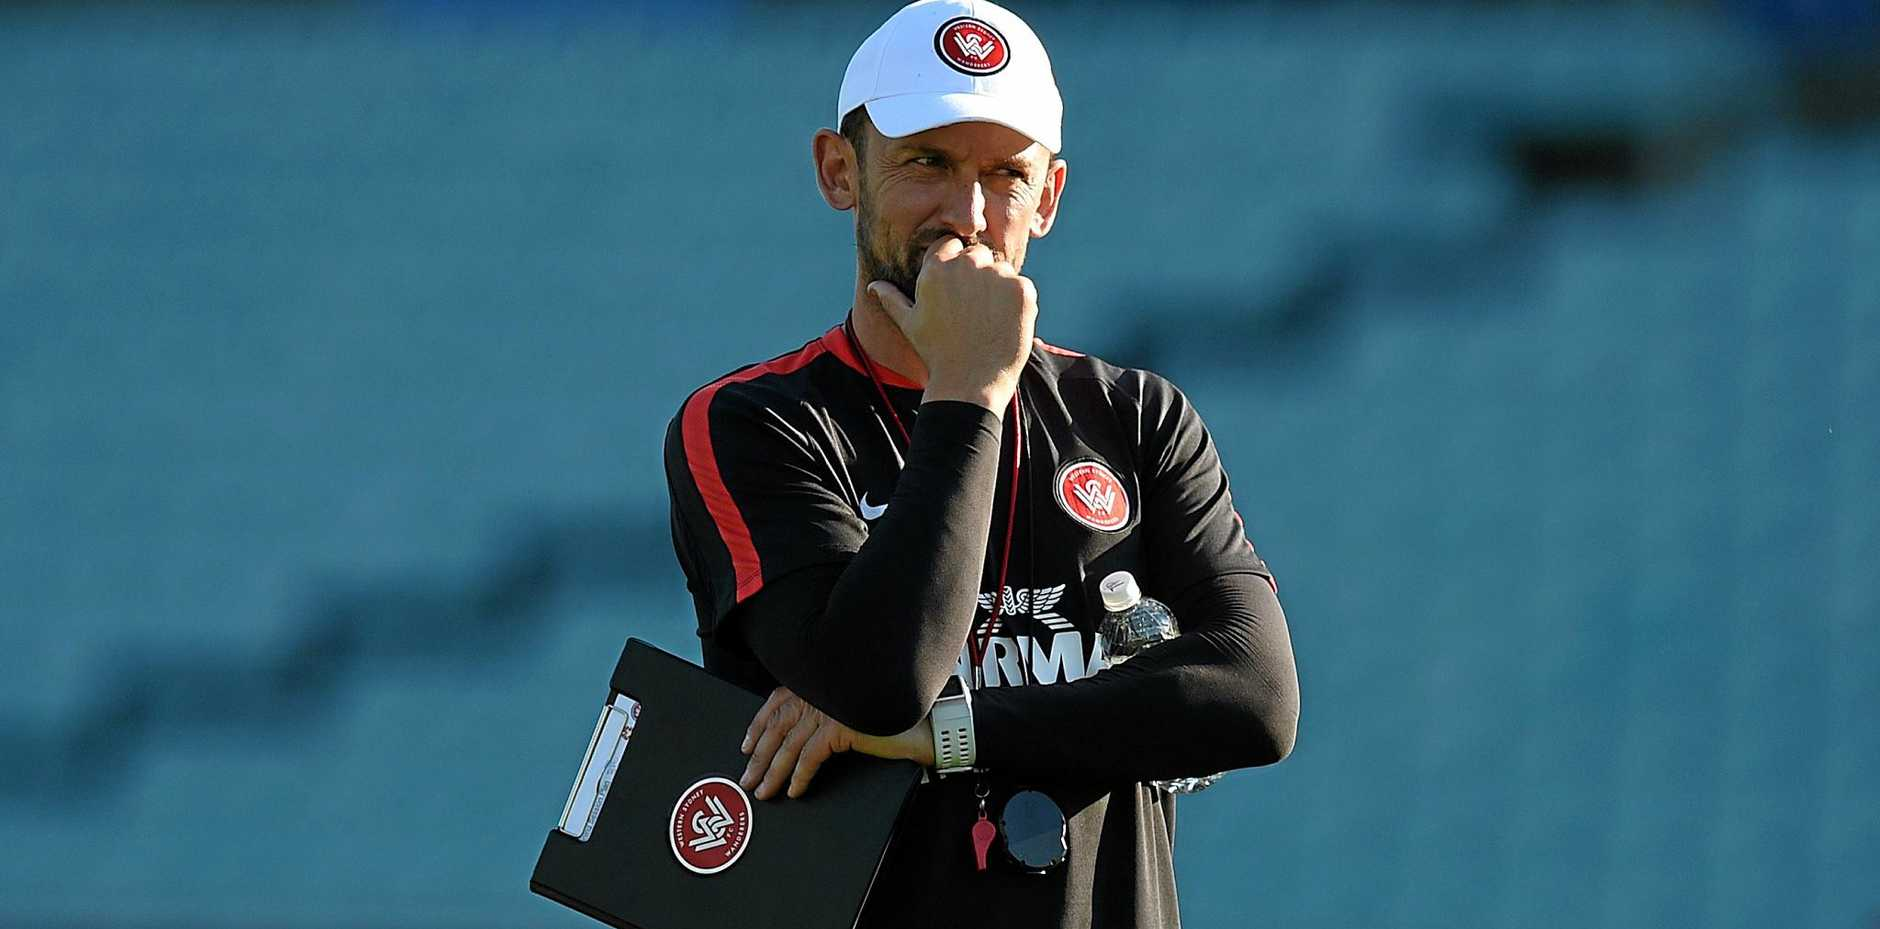 Western Sydney Wanderers coach Tony Popovic has applauded moves to stamp out anti-social behaviour at A-League games.